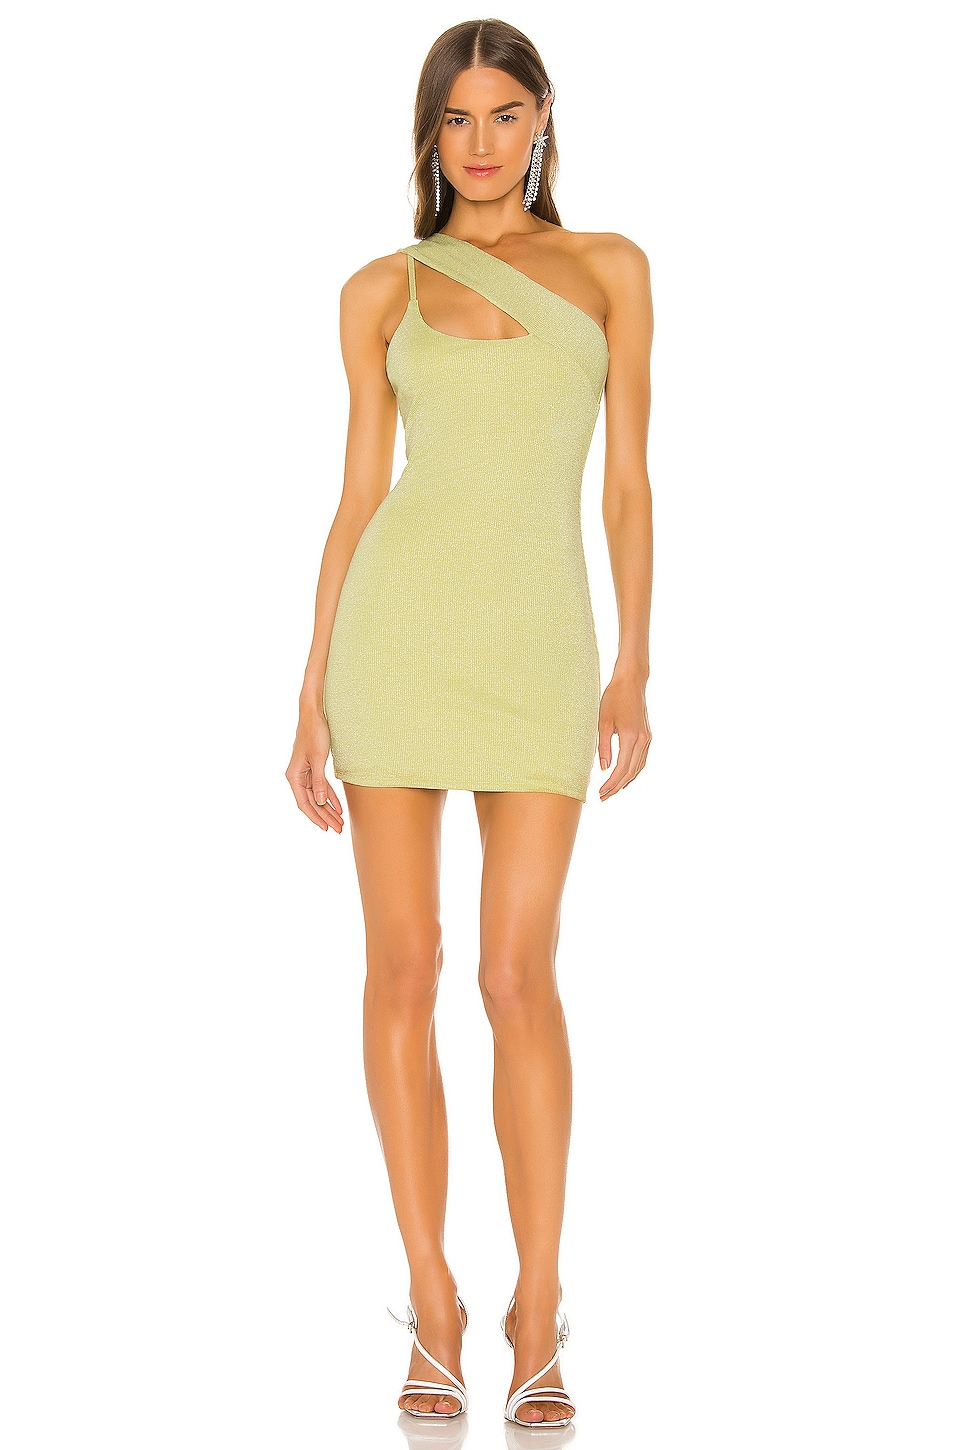 h:ours Trist Mini Dress in Yellow Green